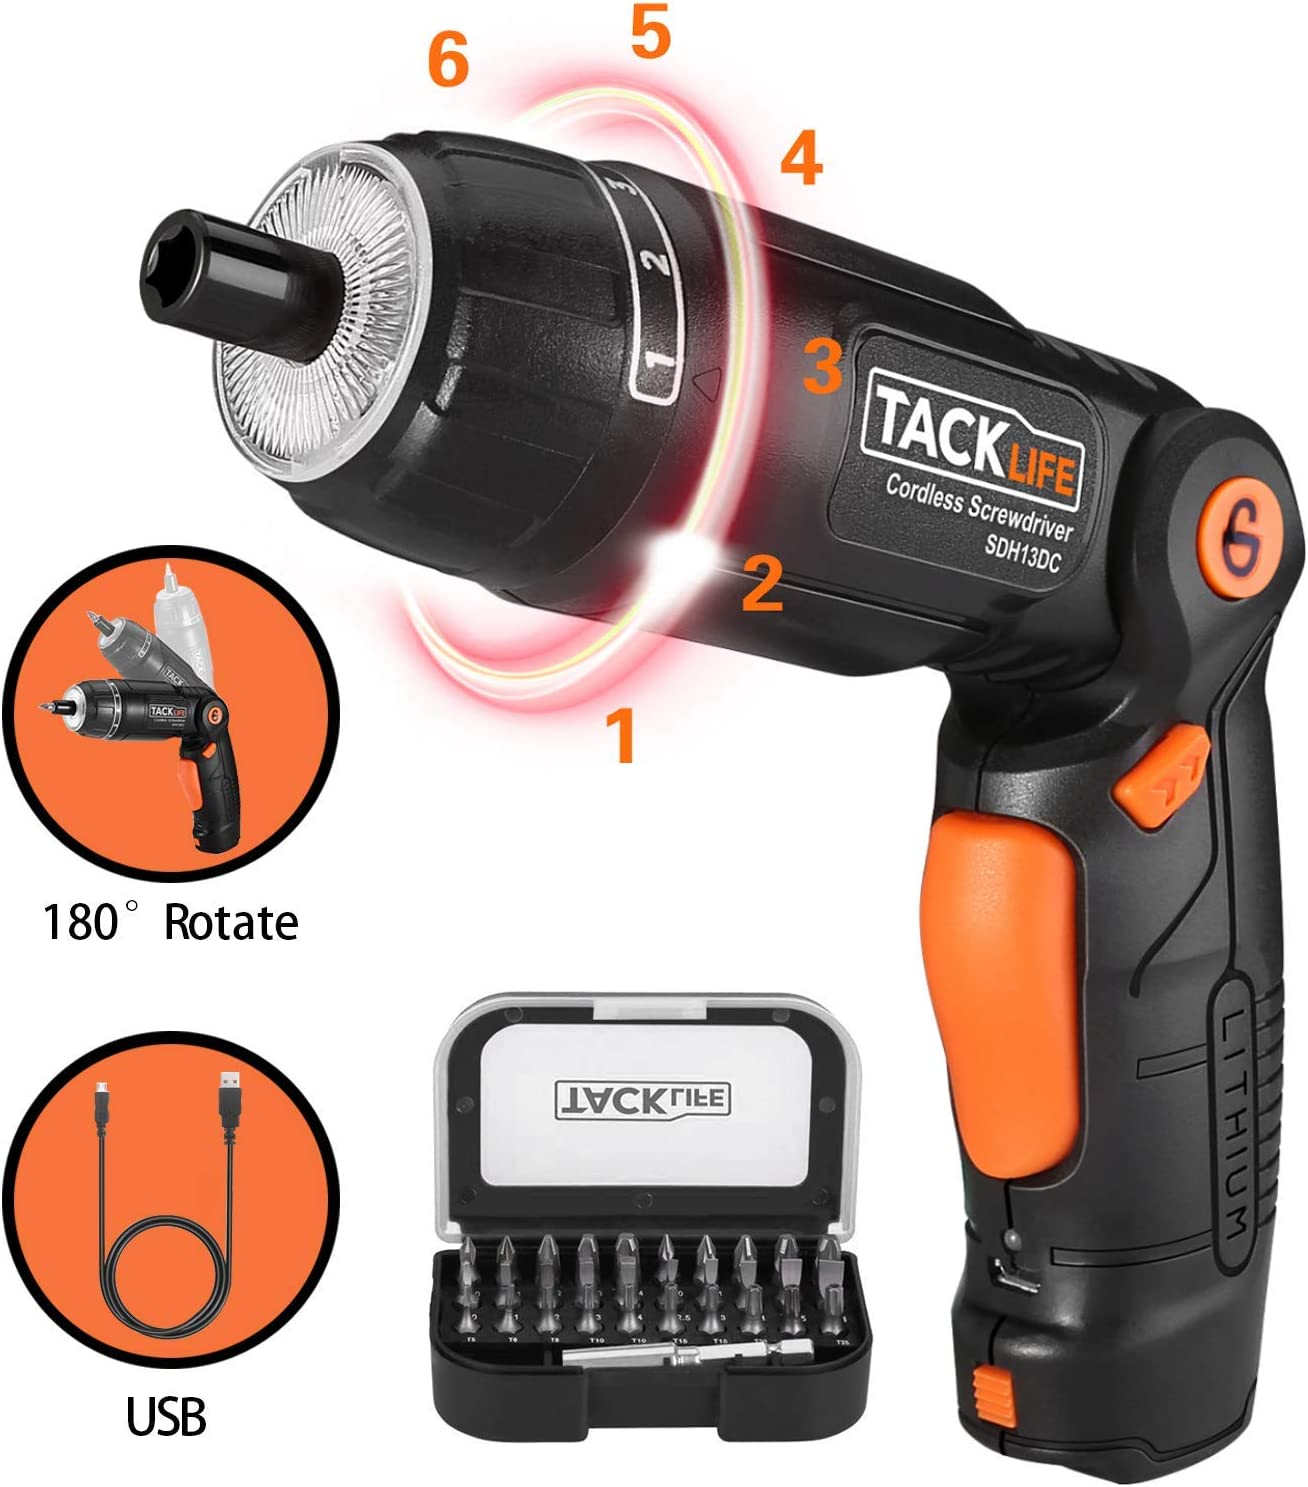 TACKLIFE Cordless Screwdriver, 3.6V 2.0Ah Electric Screwdriver Rechargeable, Adjustable 3 Position Handle, 31pcs Screwdriver Bits, 6 Torque Setting, 1 N.m to 4 N.m, Front&Rear Light, SDH13DC